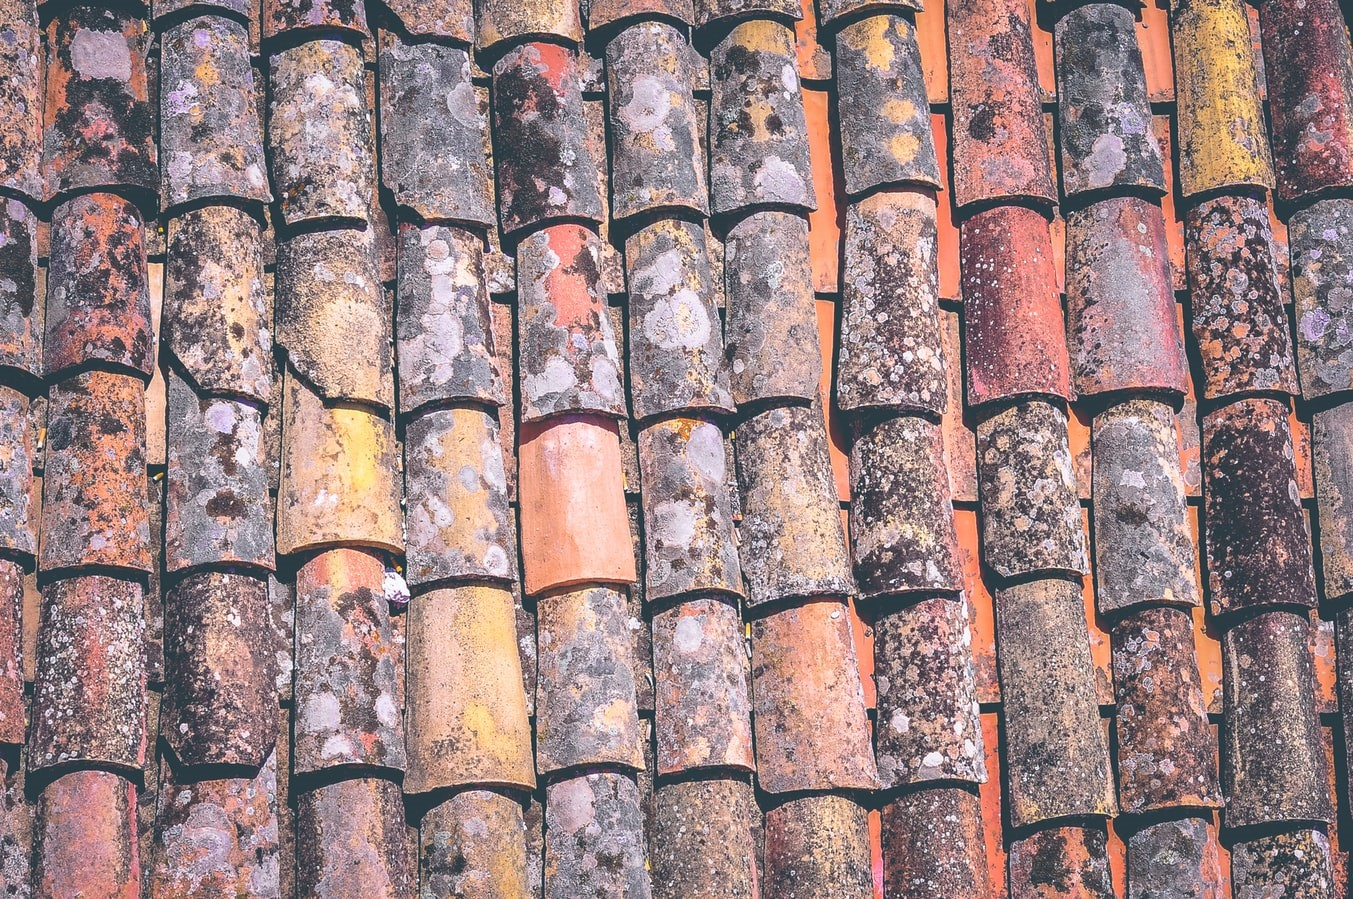 5 Signs That Show You Need New Roofing